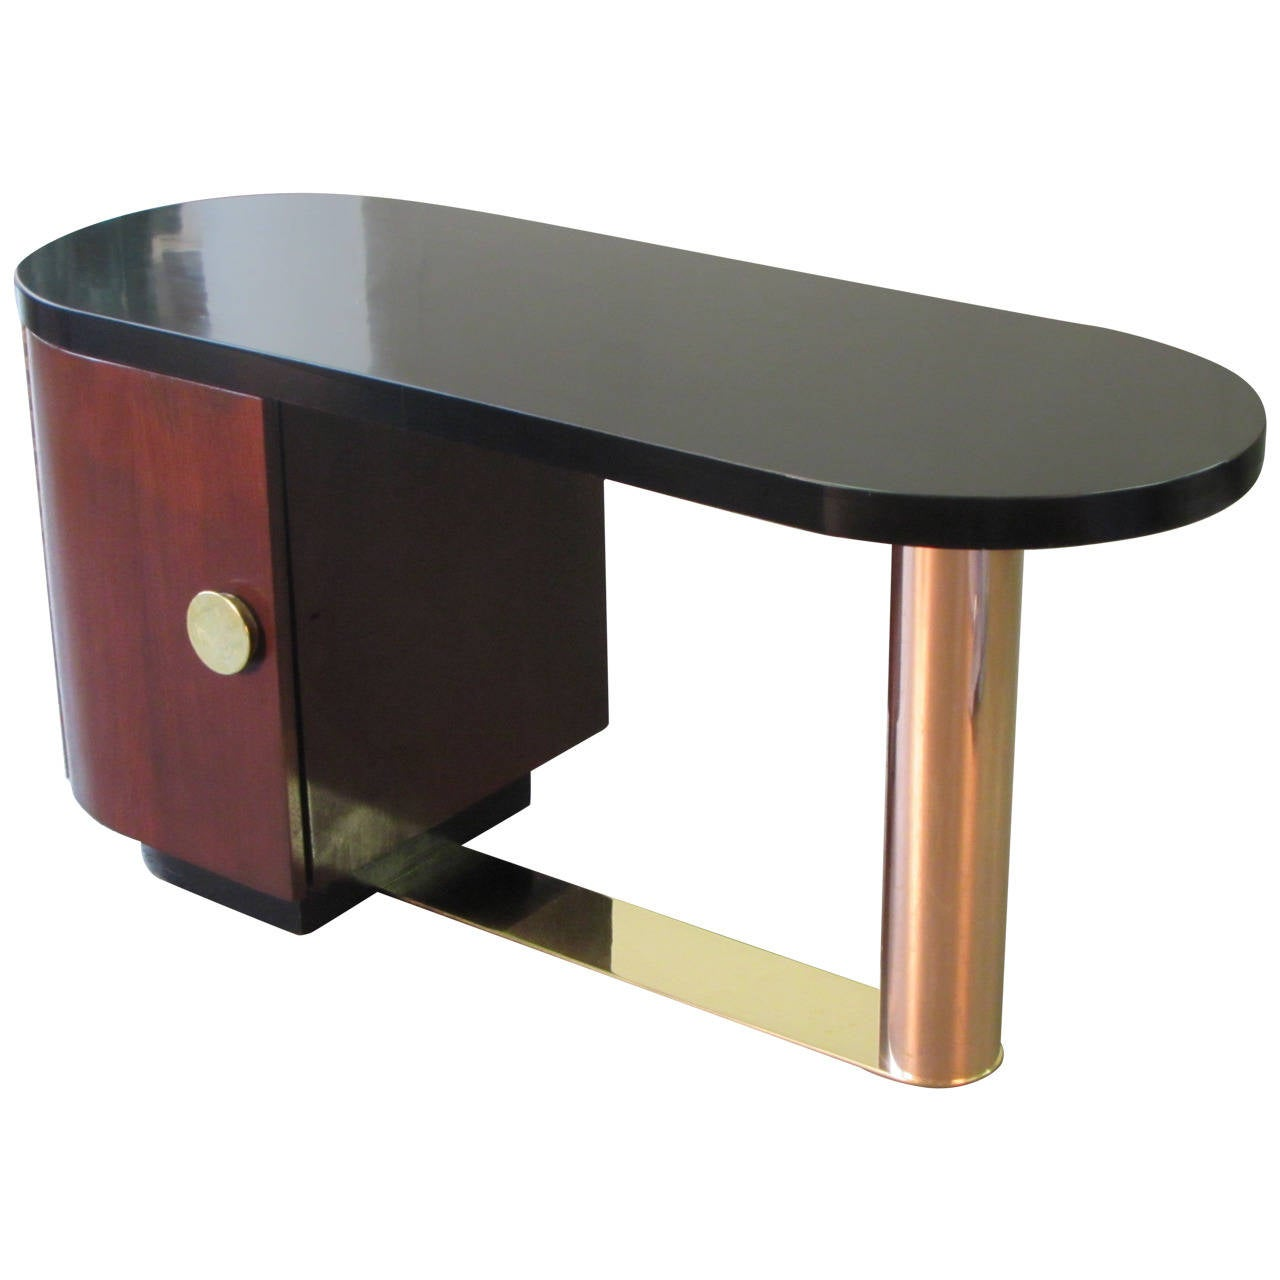 Gilbert Rohde Style Art Deco Desk With Copper And Brass